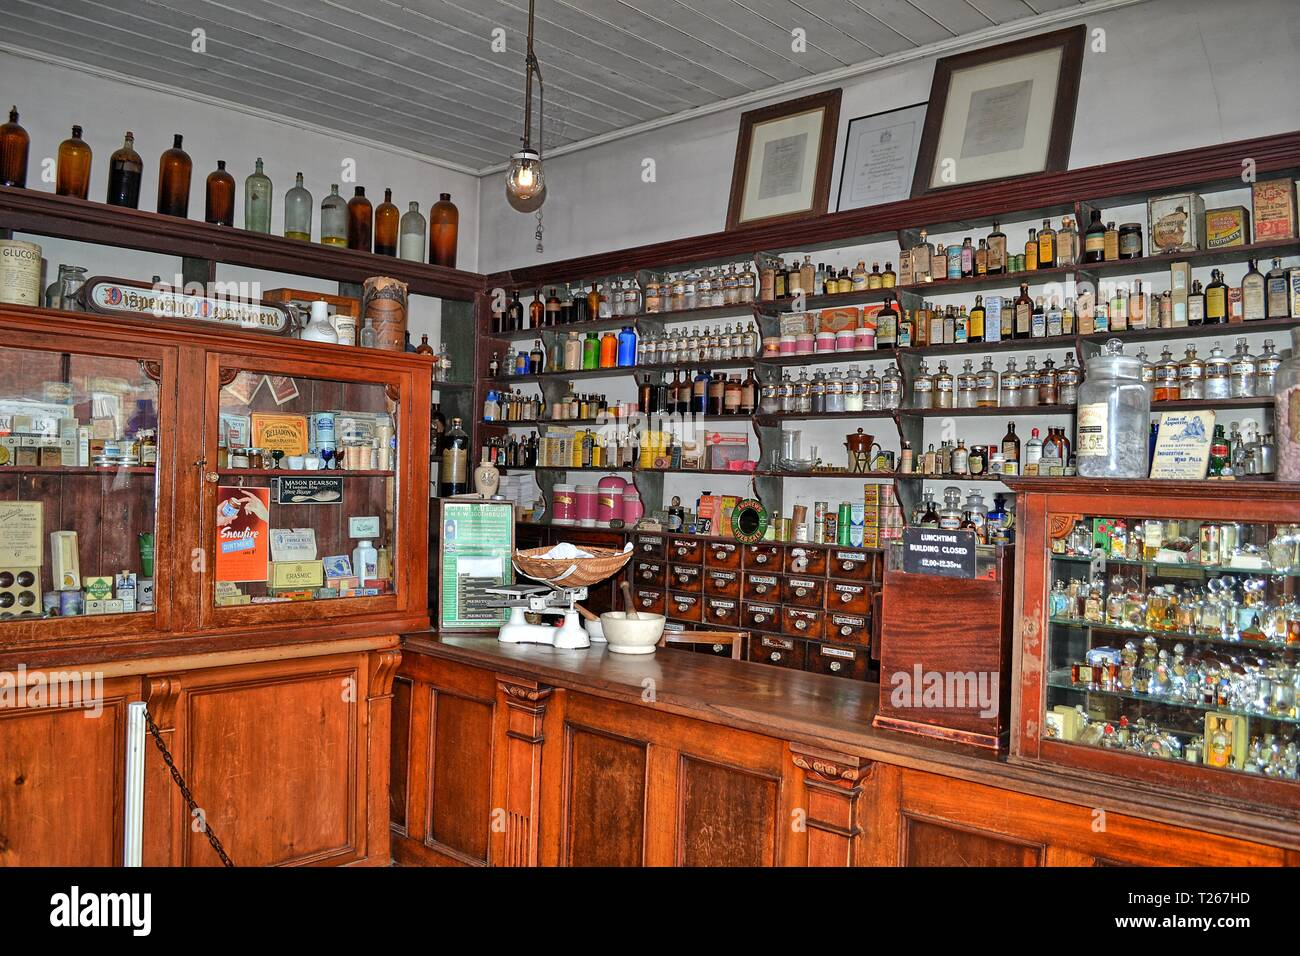 Victorian pharmacy at the Black Country Living Museum, an open-air museum of rebuilt historic buildings in Dudley, West Midlands, England, UK - Stock Image